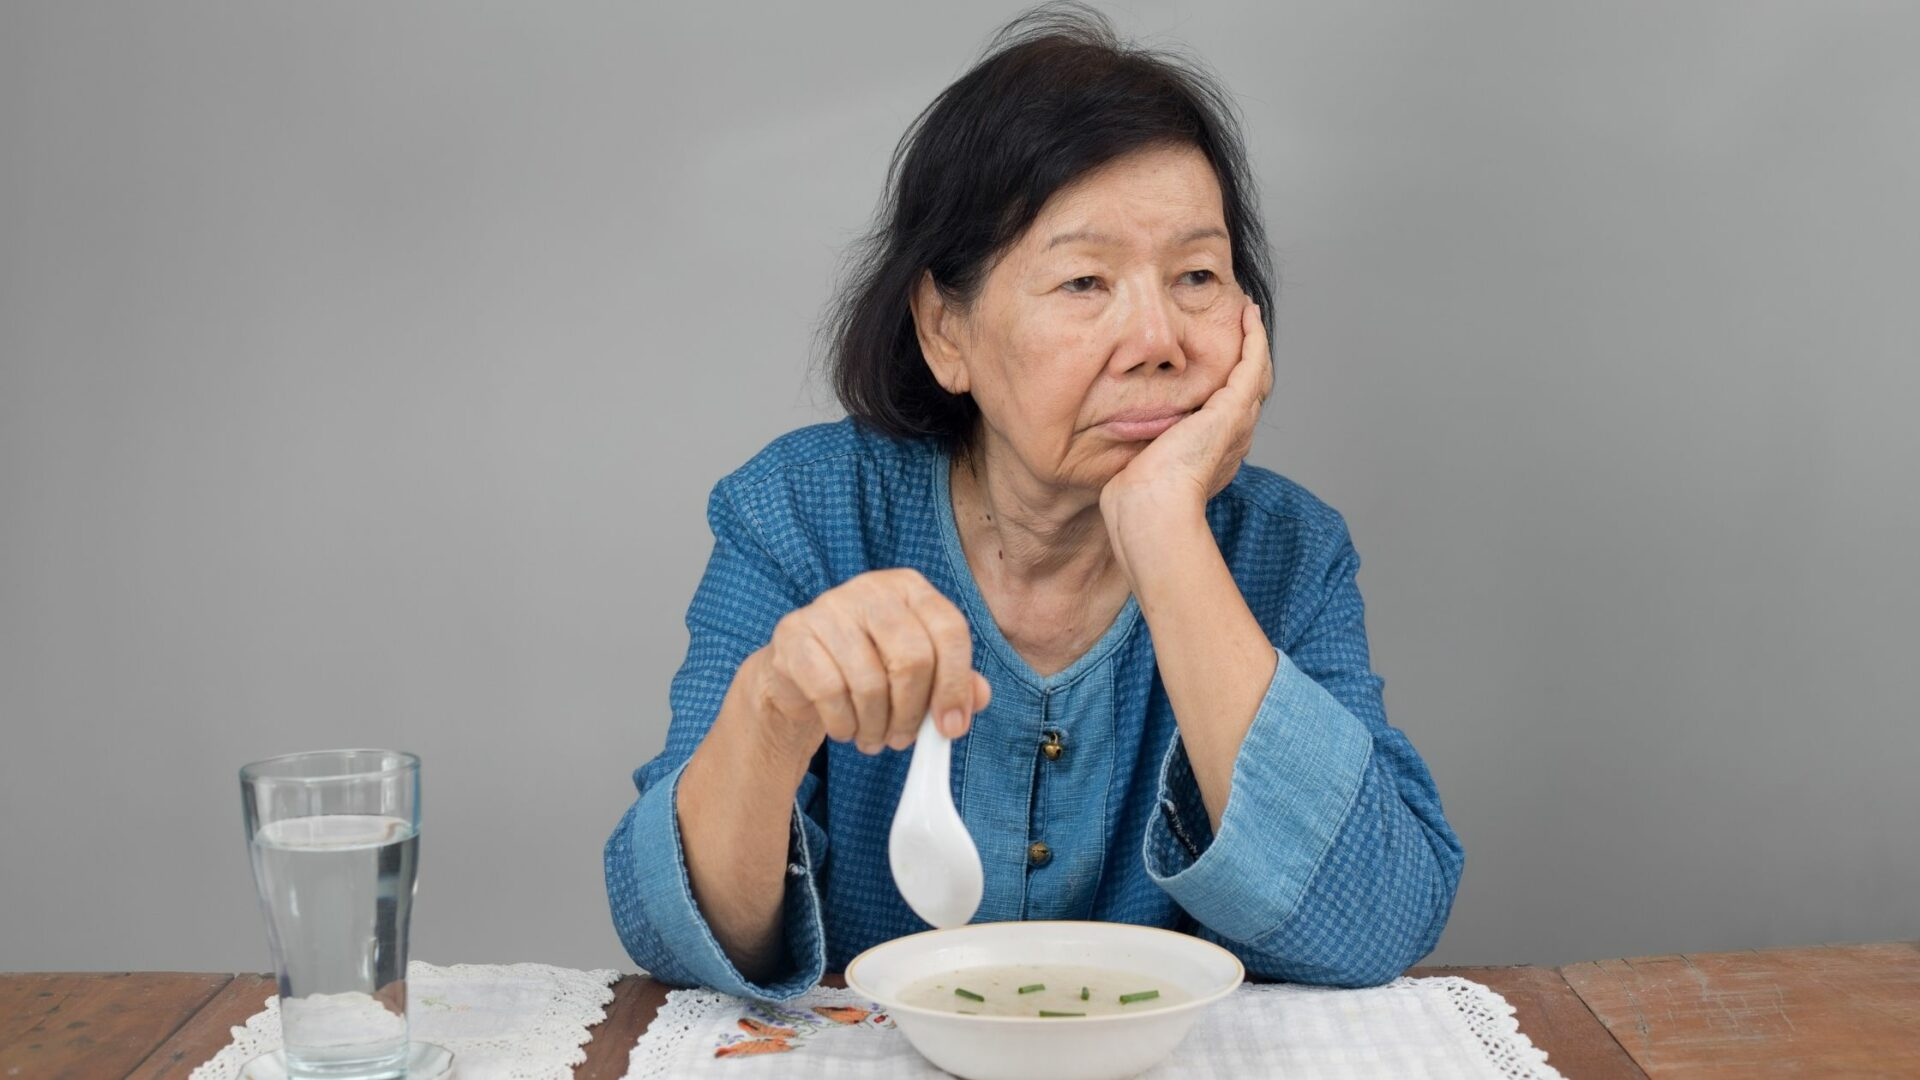 How does aging affect Appetite?